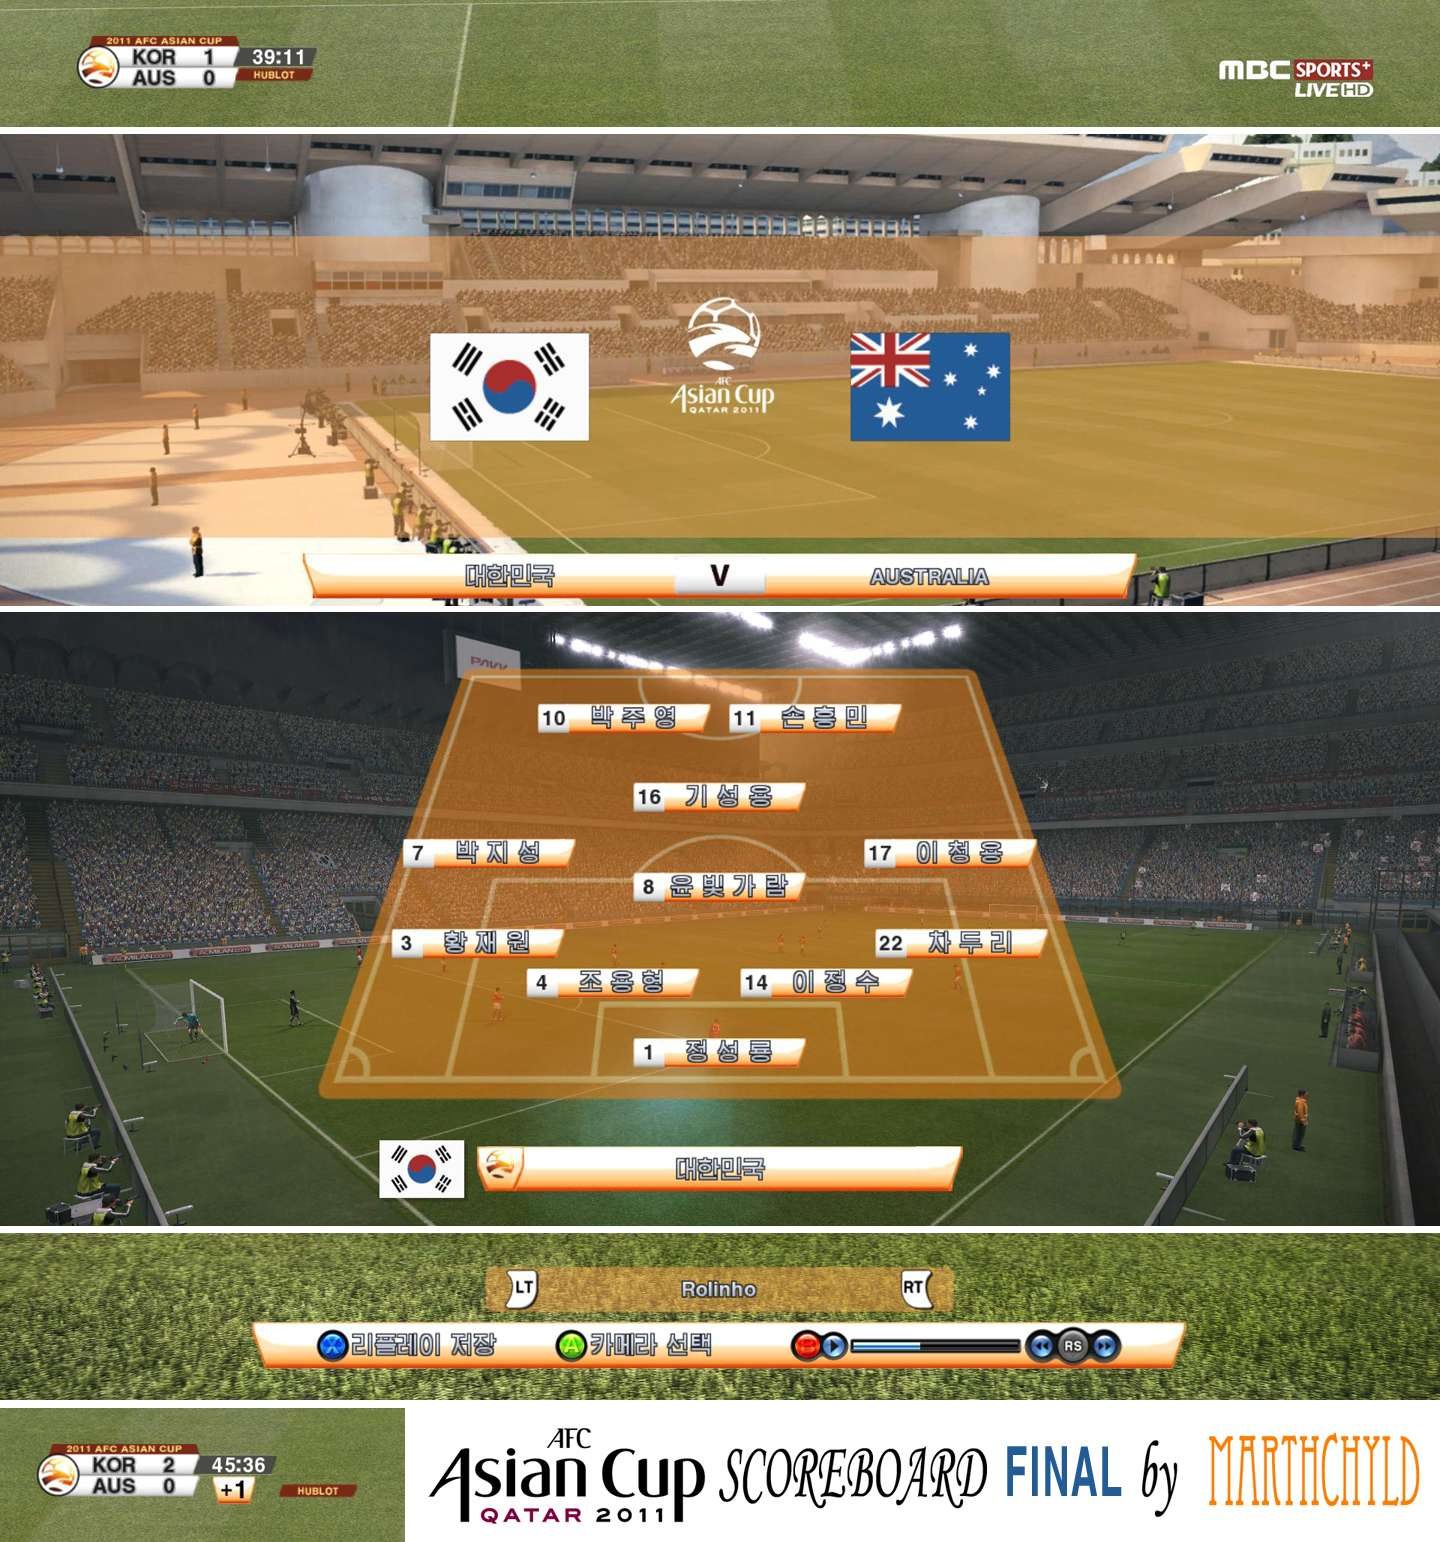 AFC Asian Cup Scoreboard Final by marthchyld - Pro Evolution